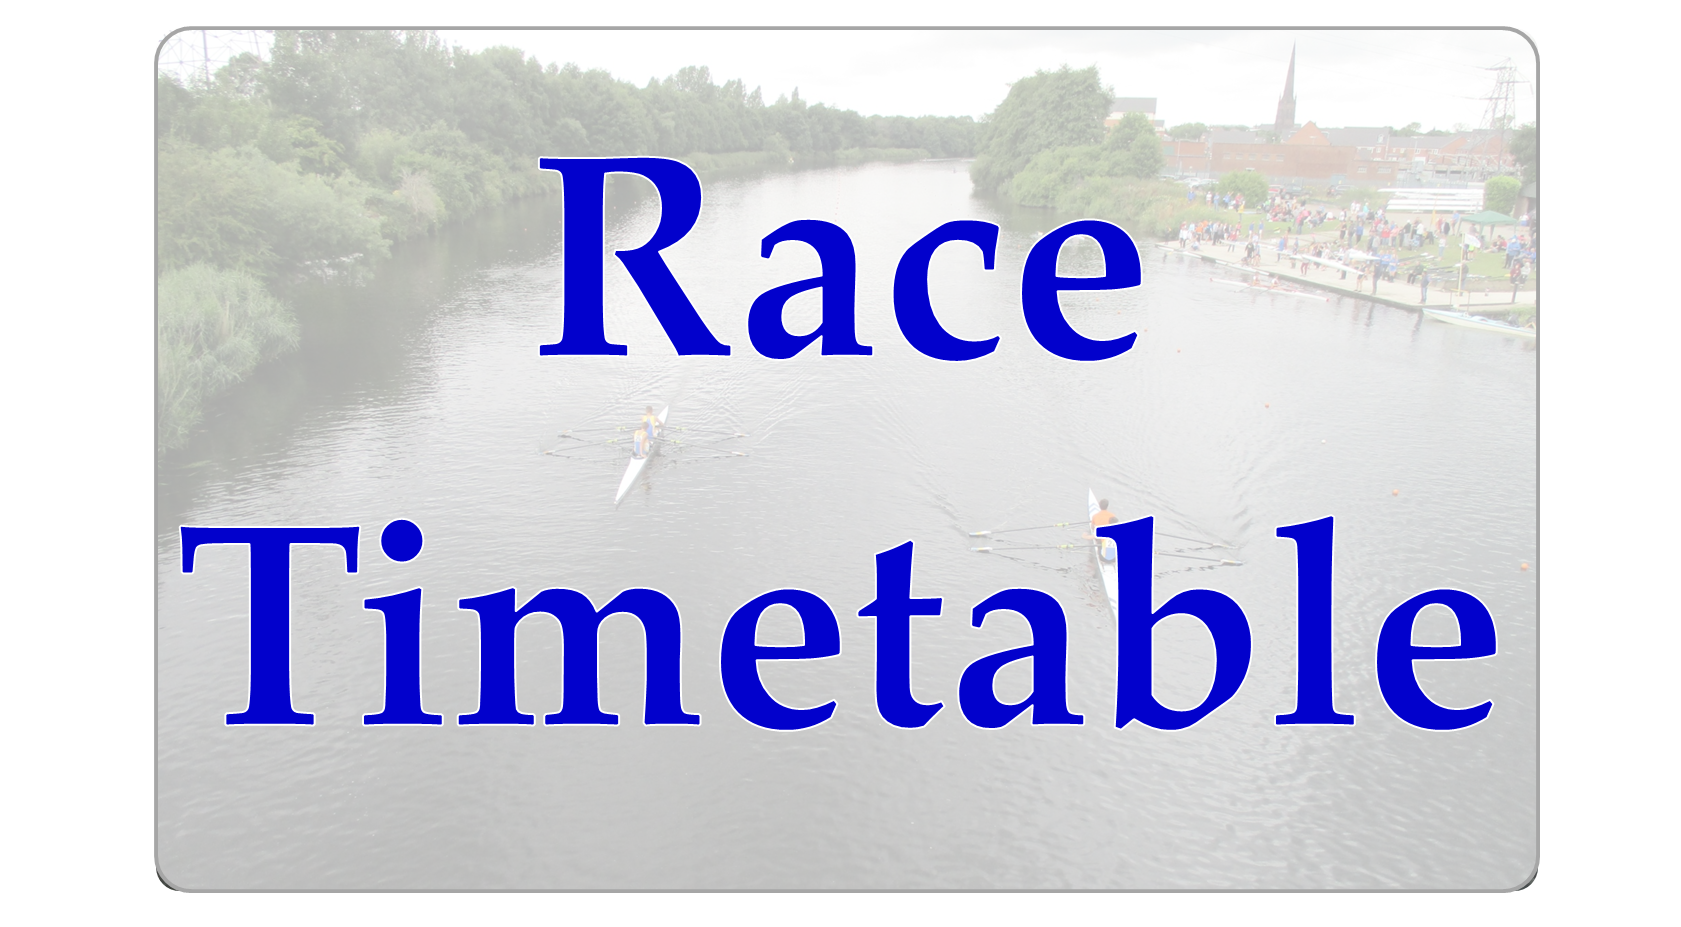 Race Timetable